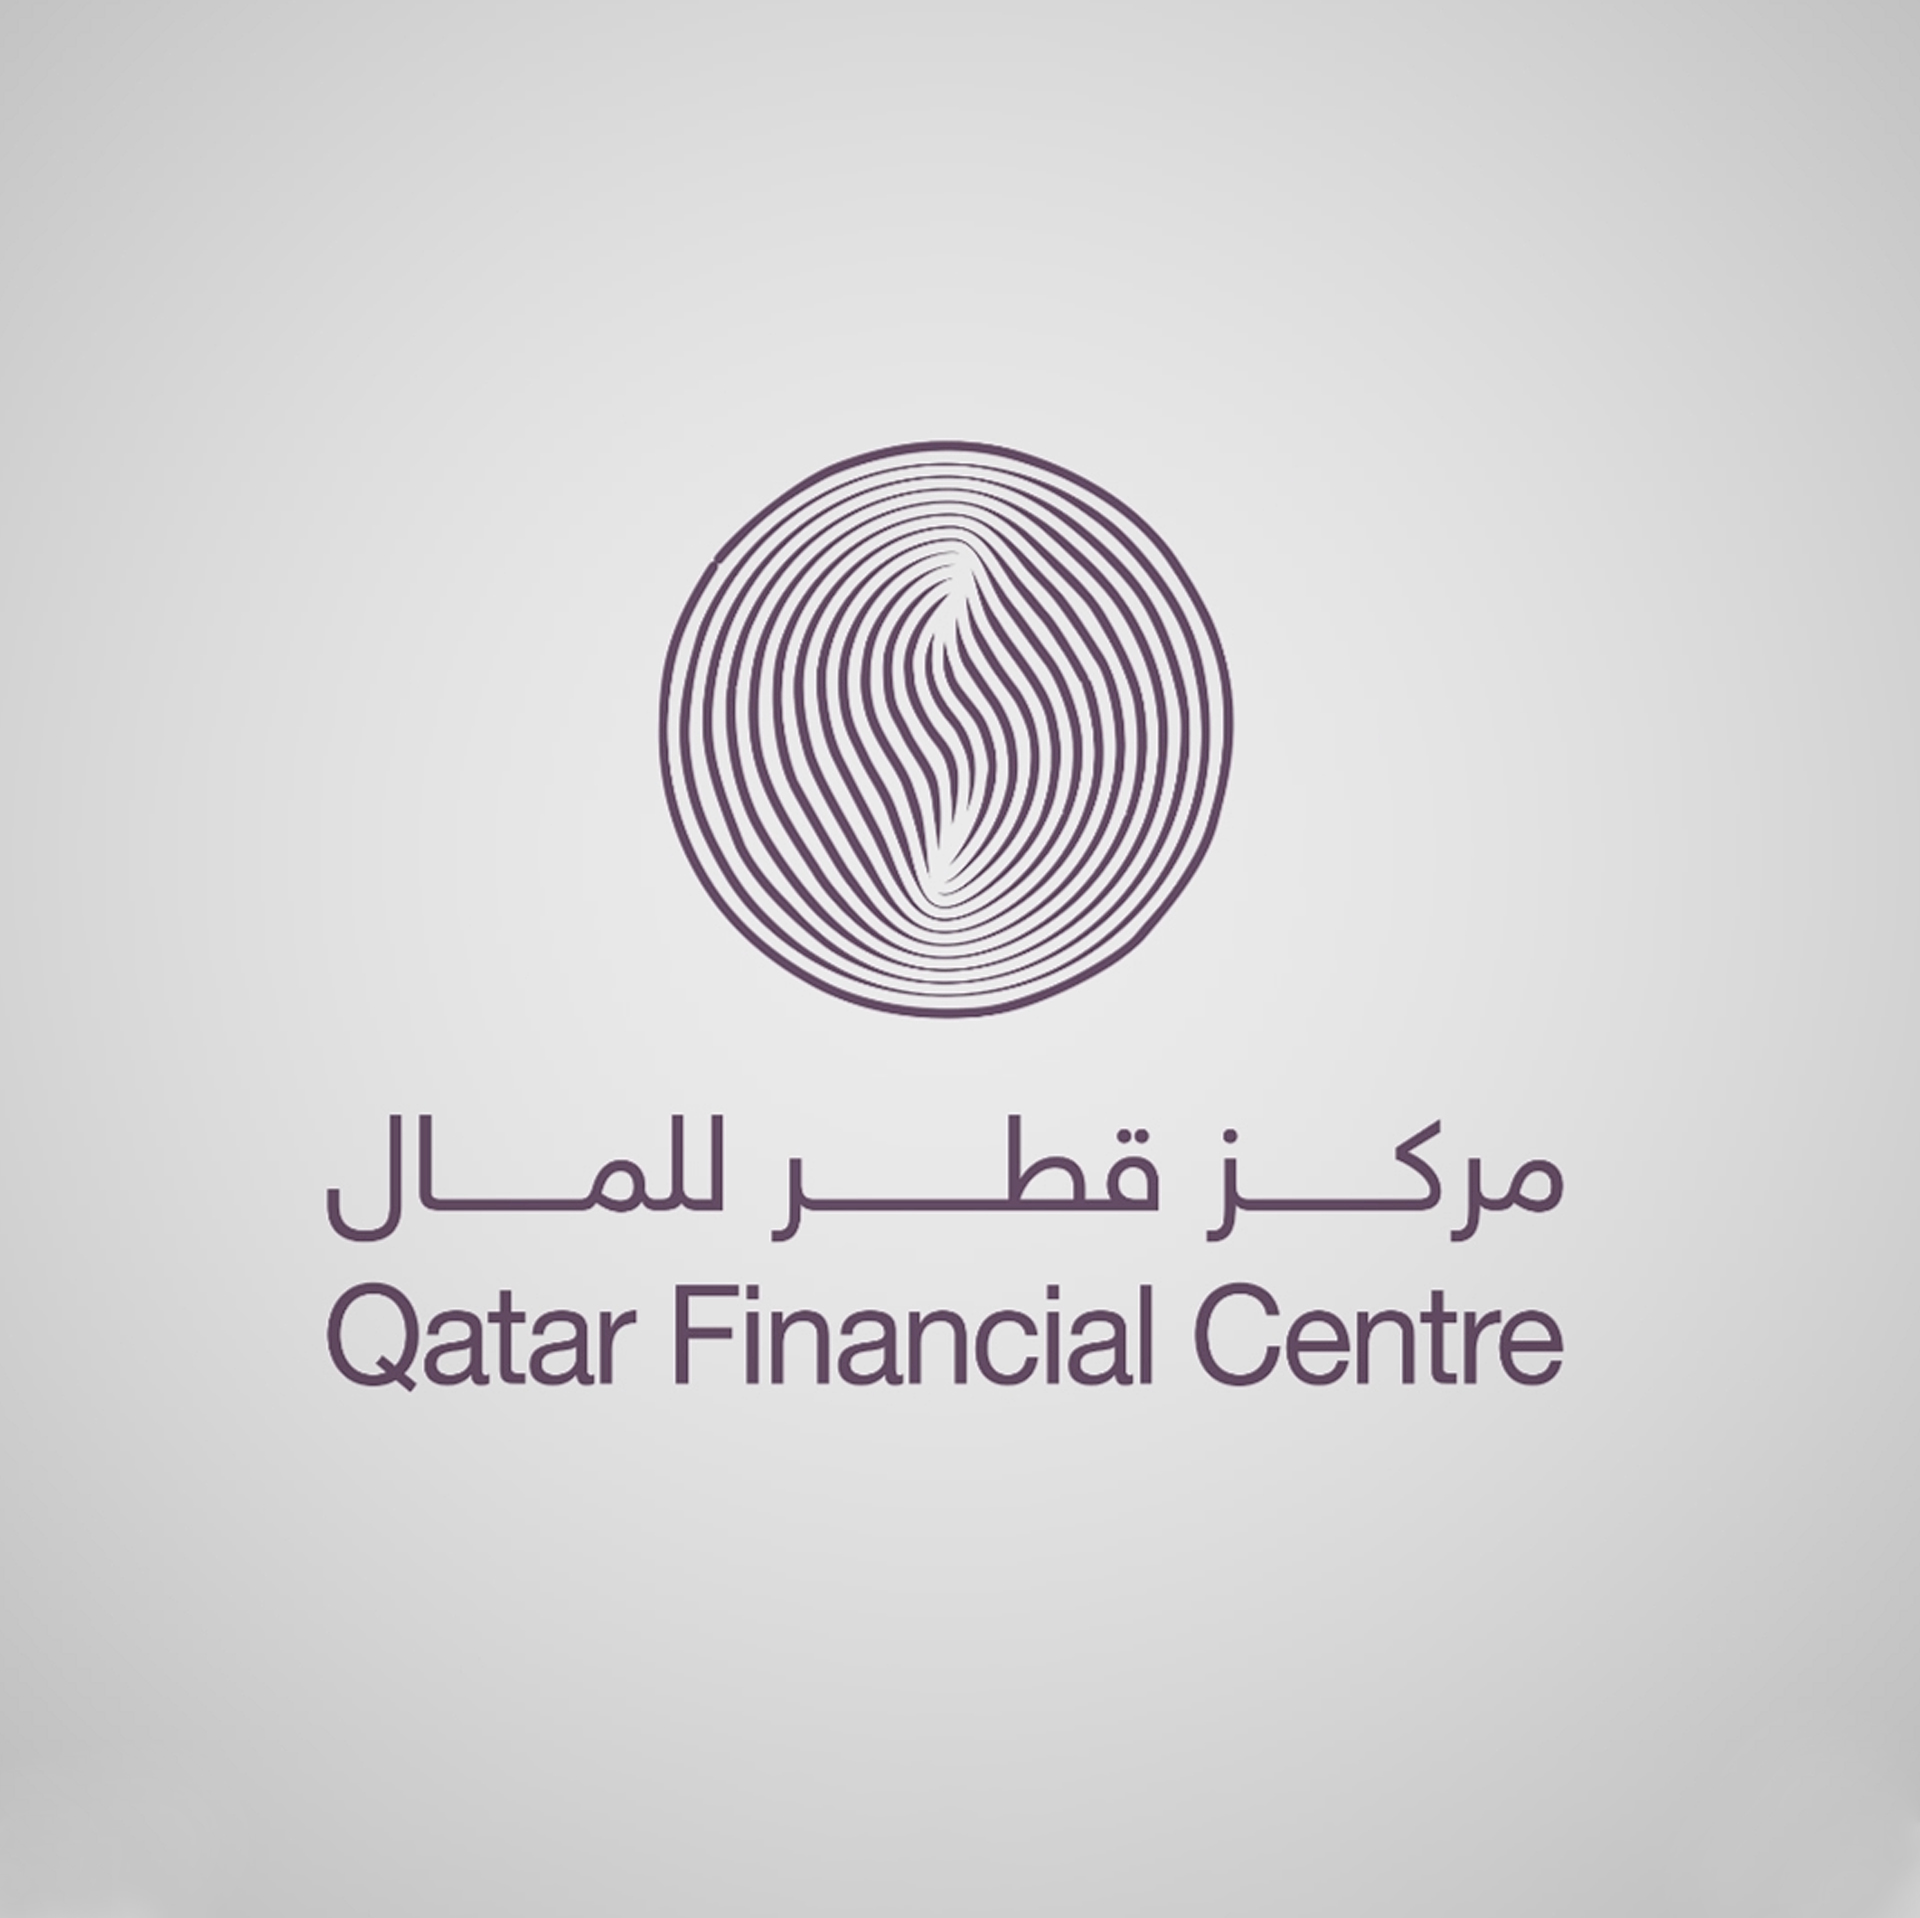 Qatar Financial Centre (QFC)